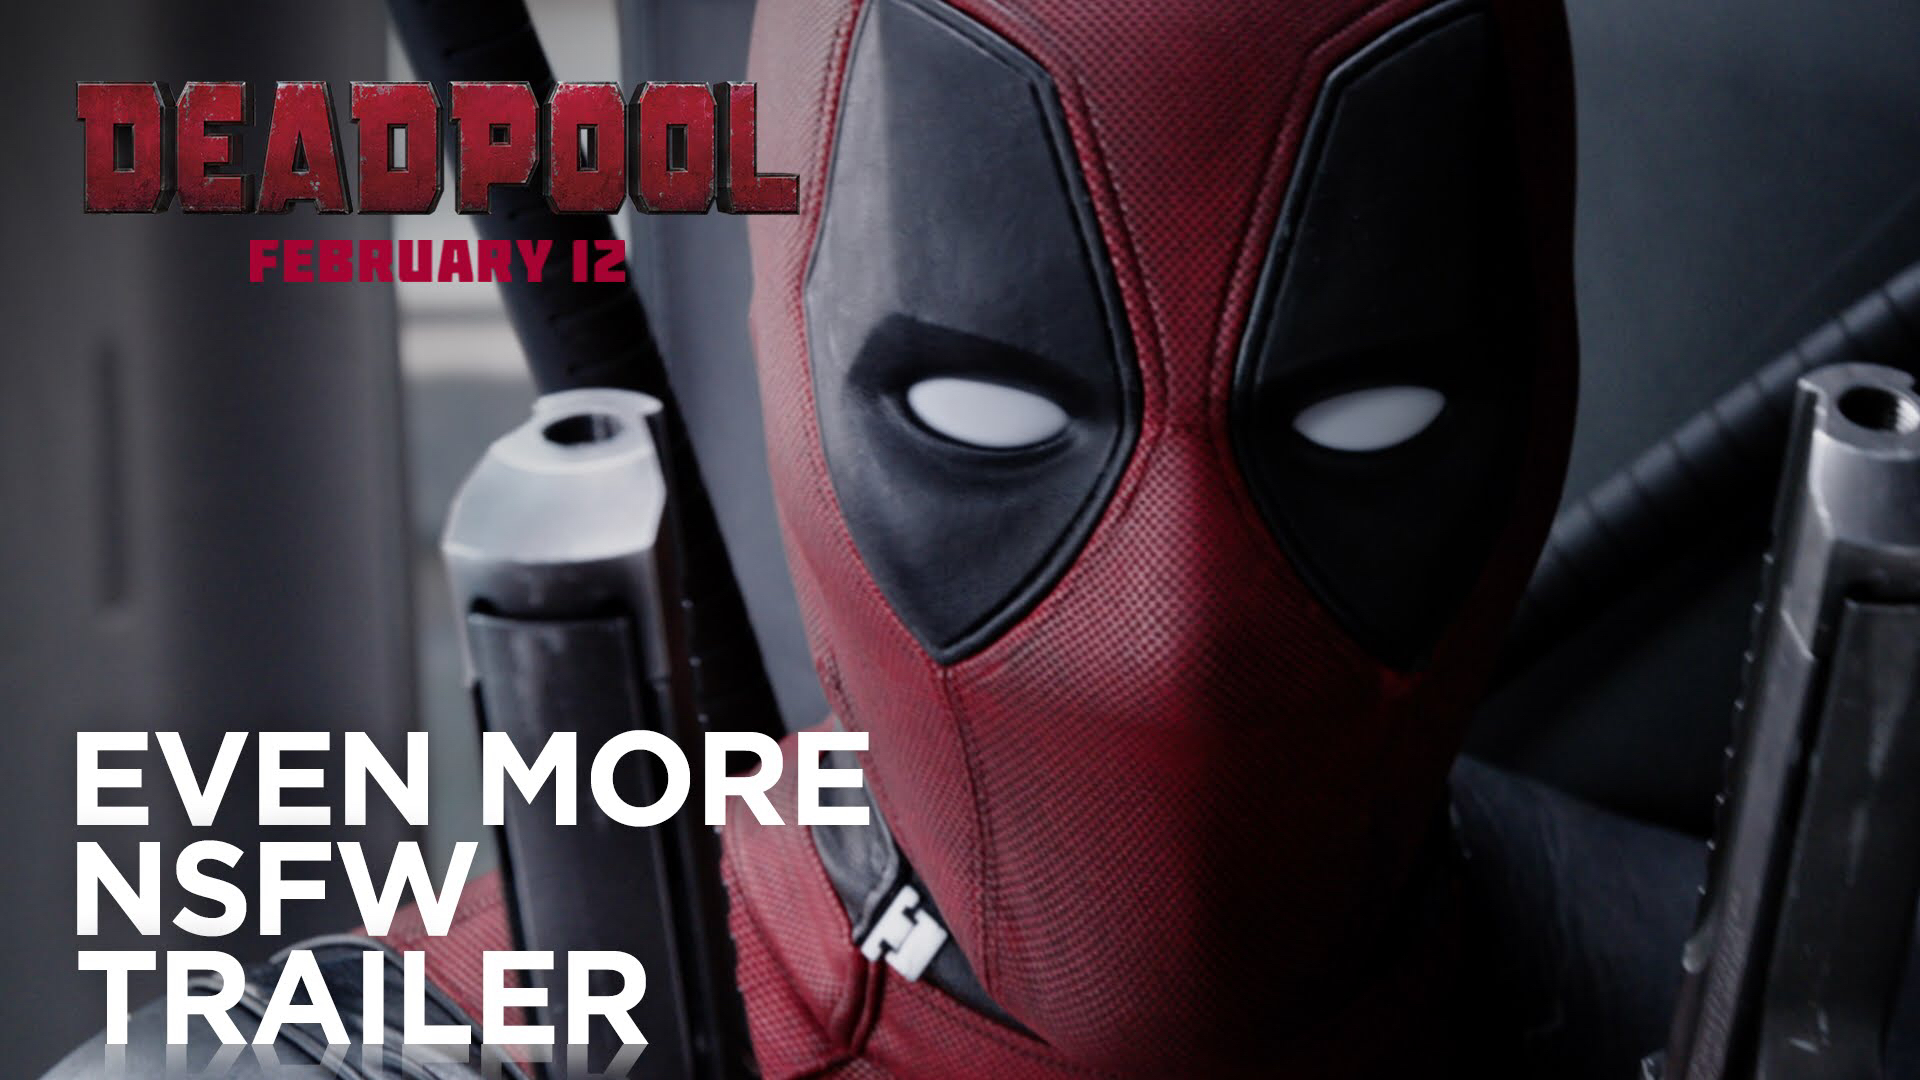 Deadpool Red Band Trailer Is Out, Don't Share It With Your Kids Though!